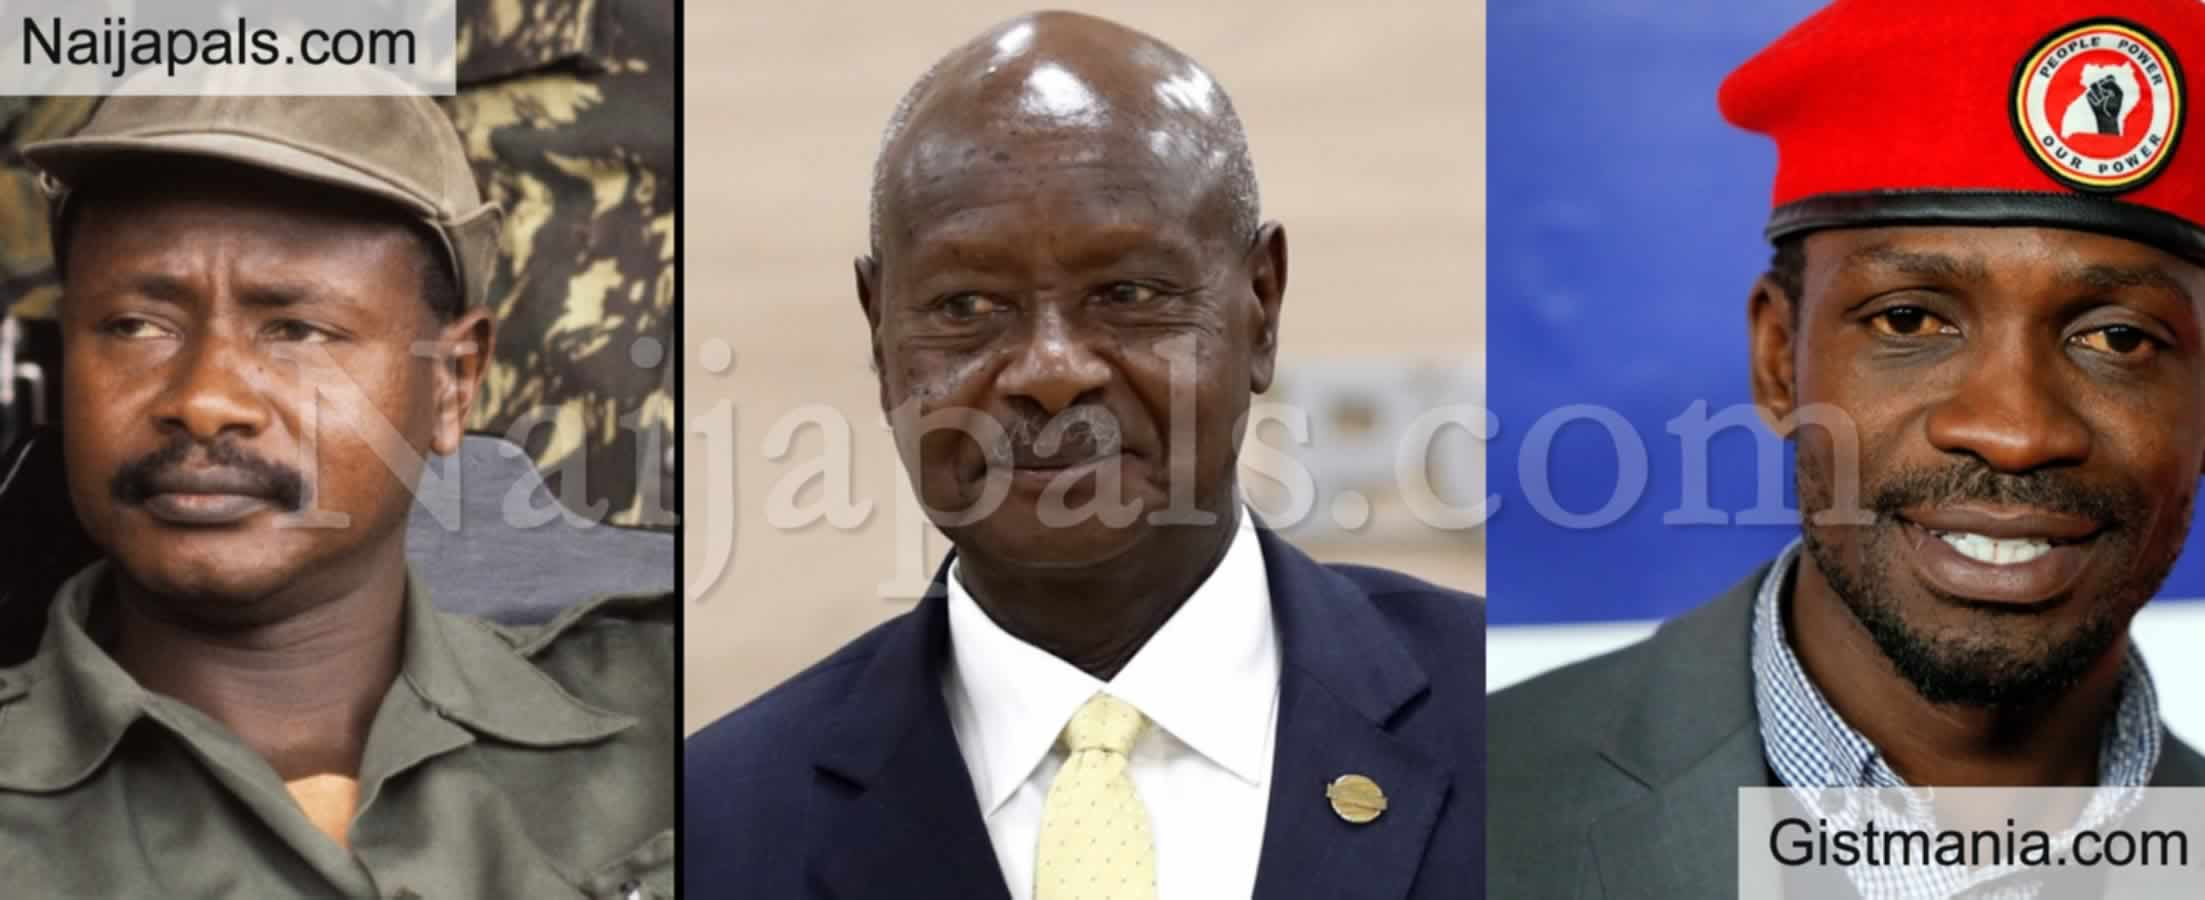 <img alt='.' class='lazyload' data-src='https://img.gistmania.com/emot/news.gif' /> <b>Ugandan Government Switches Internet Back On But Leaves Social Media Blocked</b>